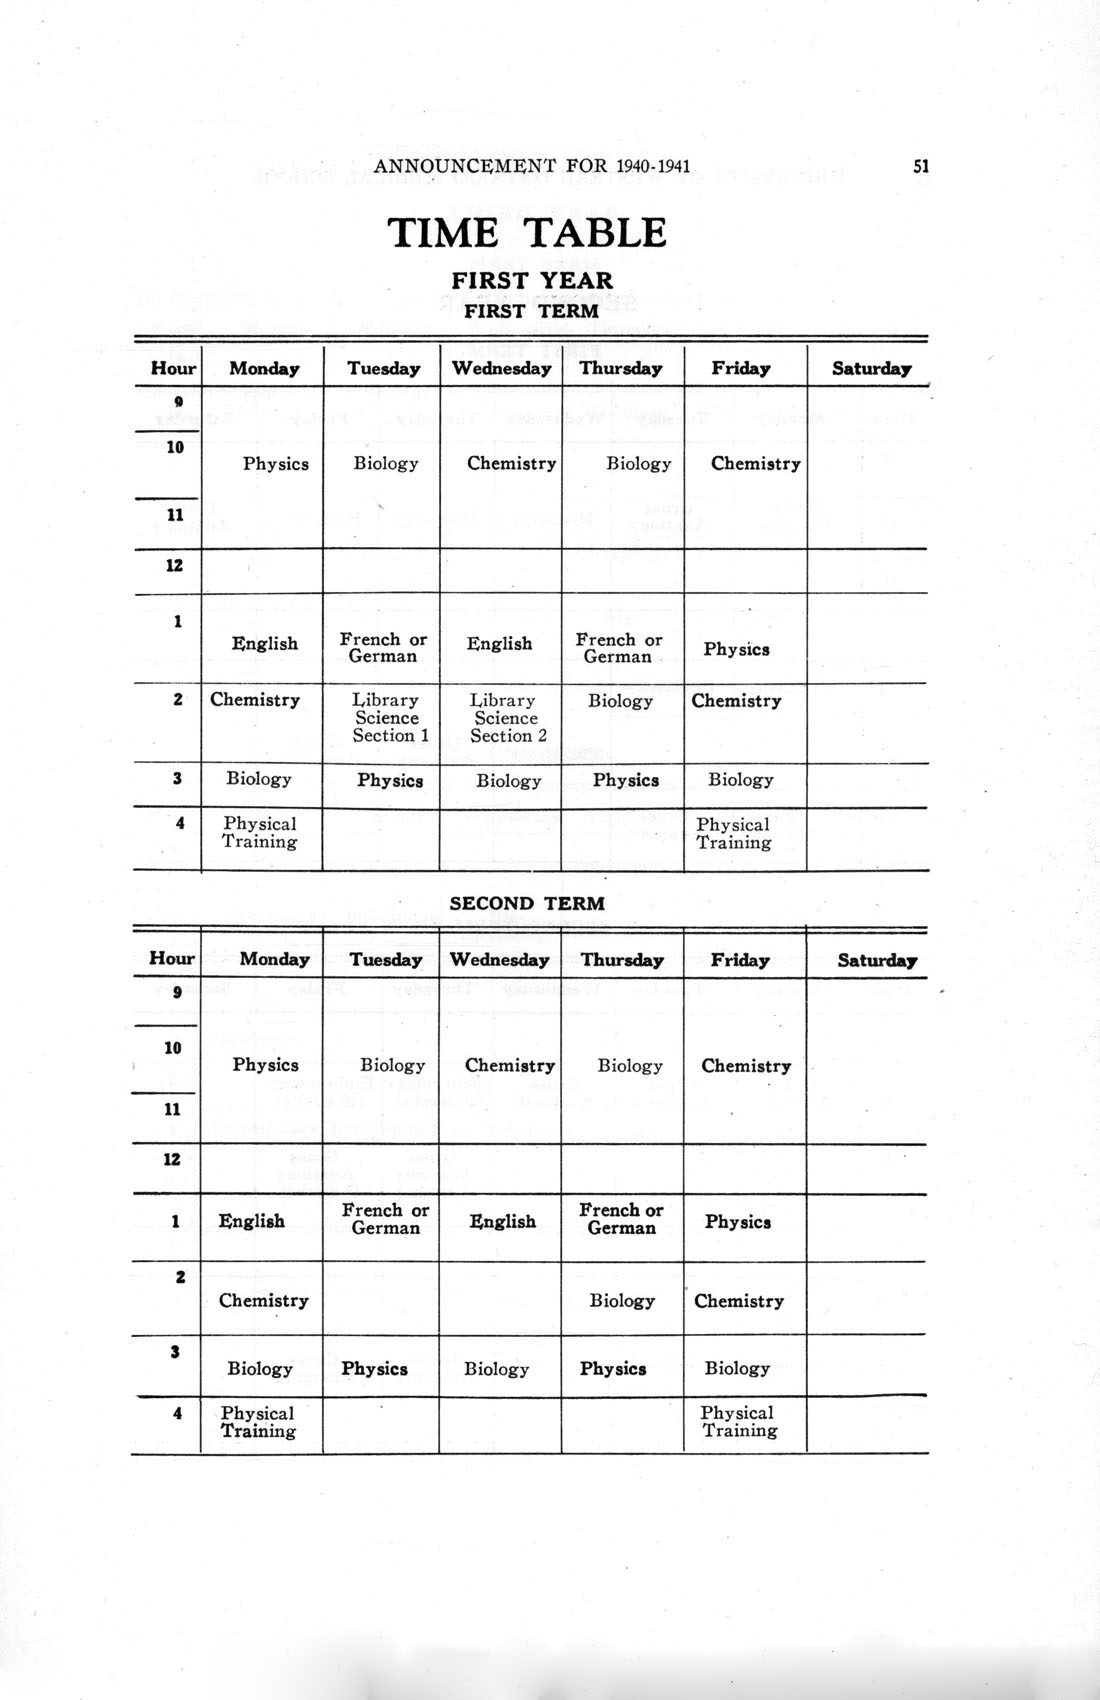 Faculty Of Medicine Calendar 1940-1941, First Year Timetable